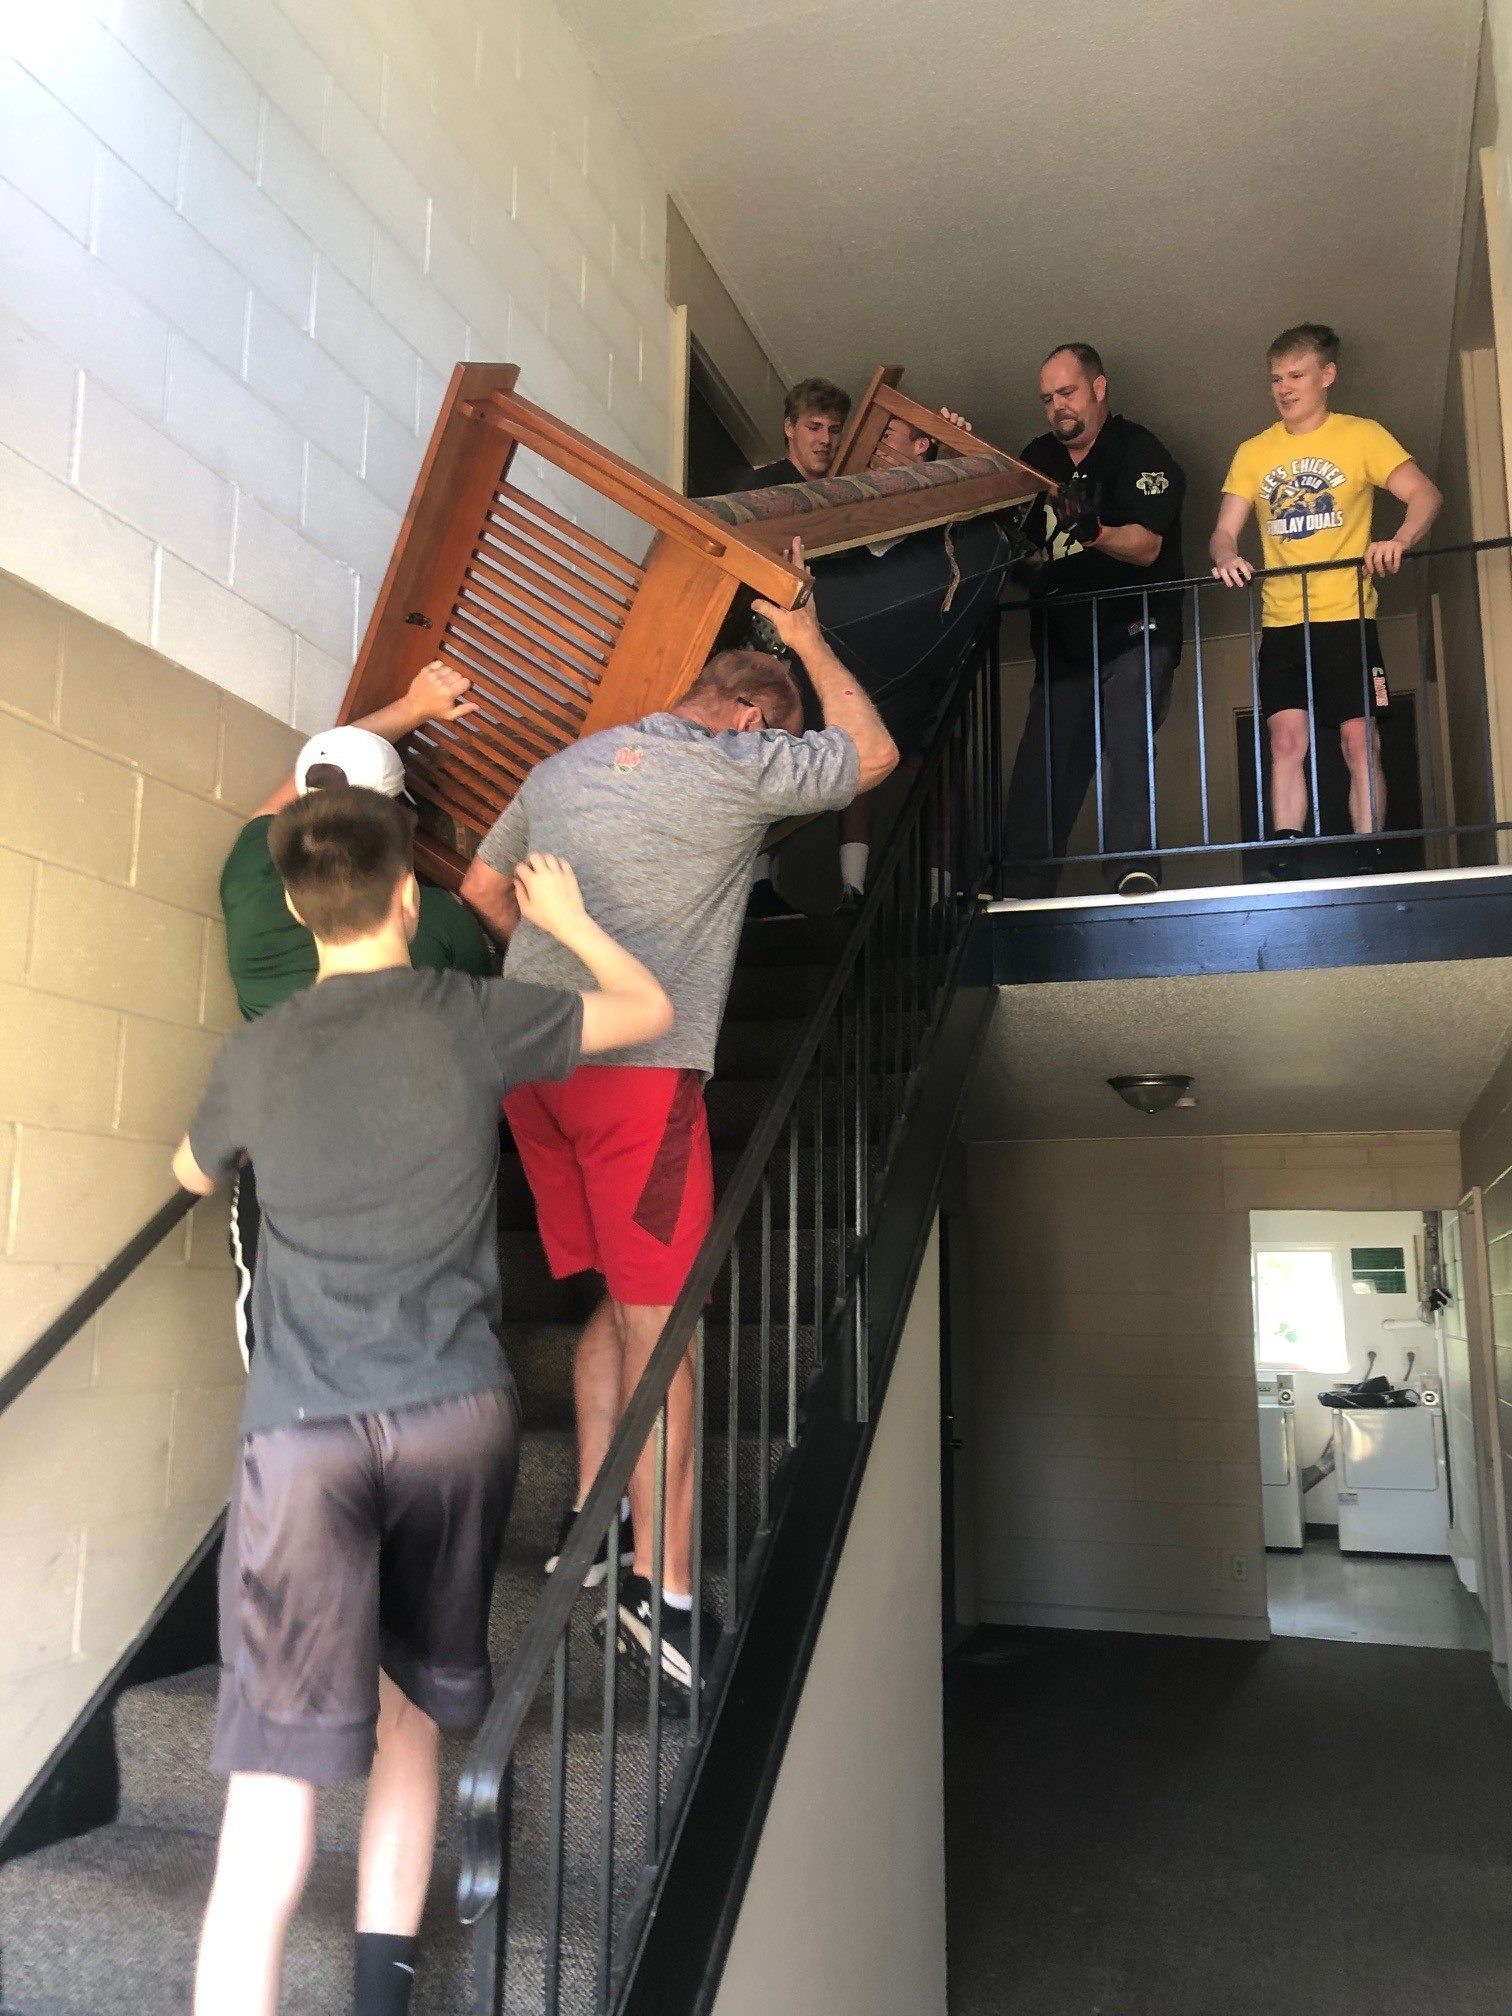 Oak Harbor High School wrestling team members and their coach, George Bergman, recently assisted the Ottawa County Veterans Service Office by helping a local veteran move furniture into his new apartment. (Submitted photo)